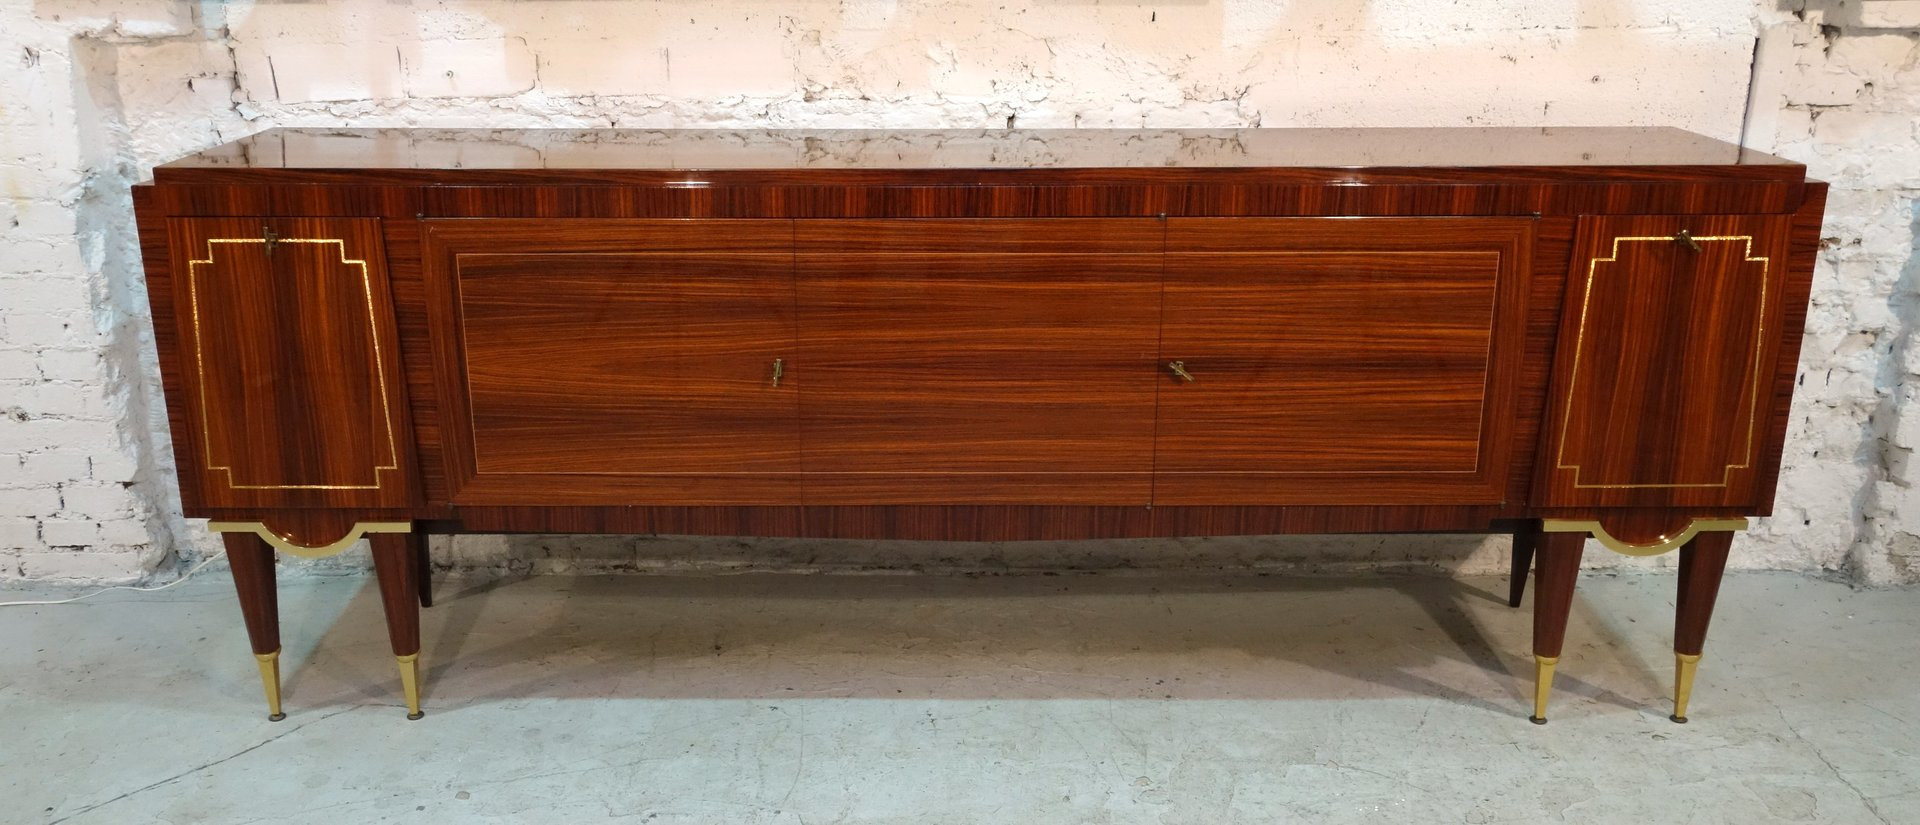 Art d co sideboard from meuble triomphe 1940s for sale at for Meuble art deco occasion